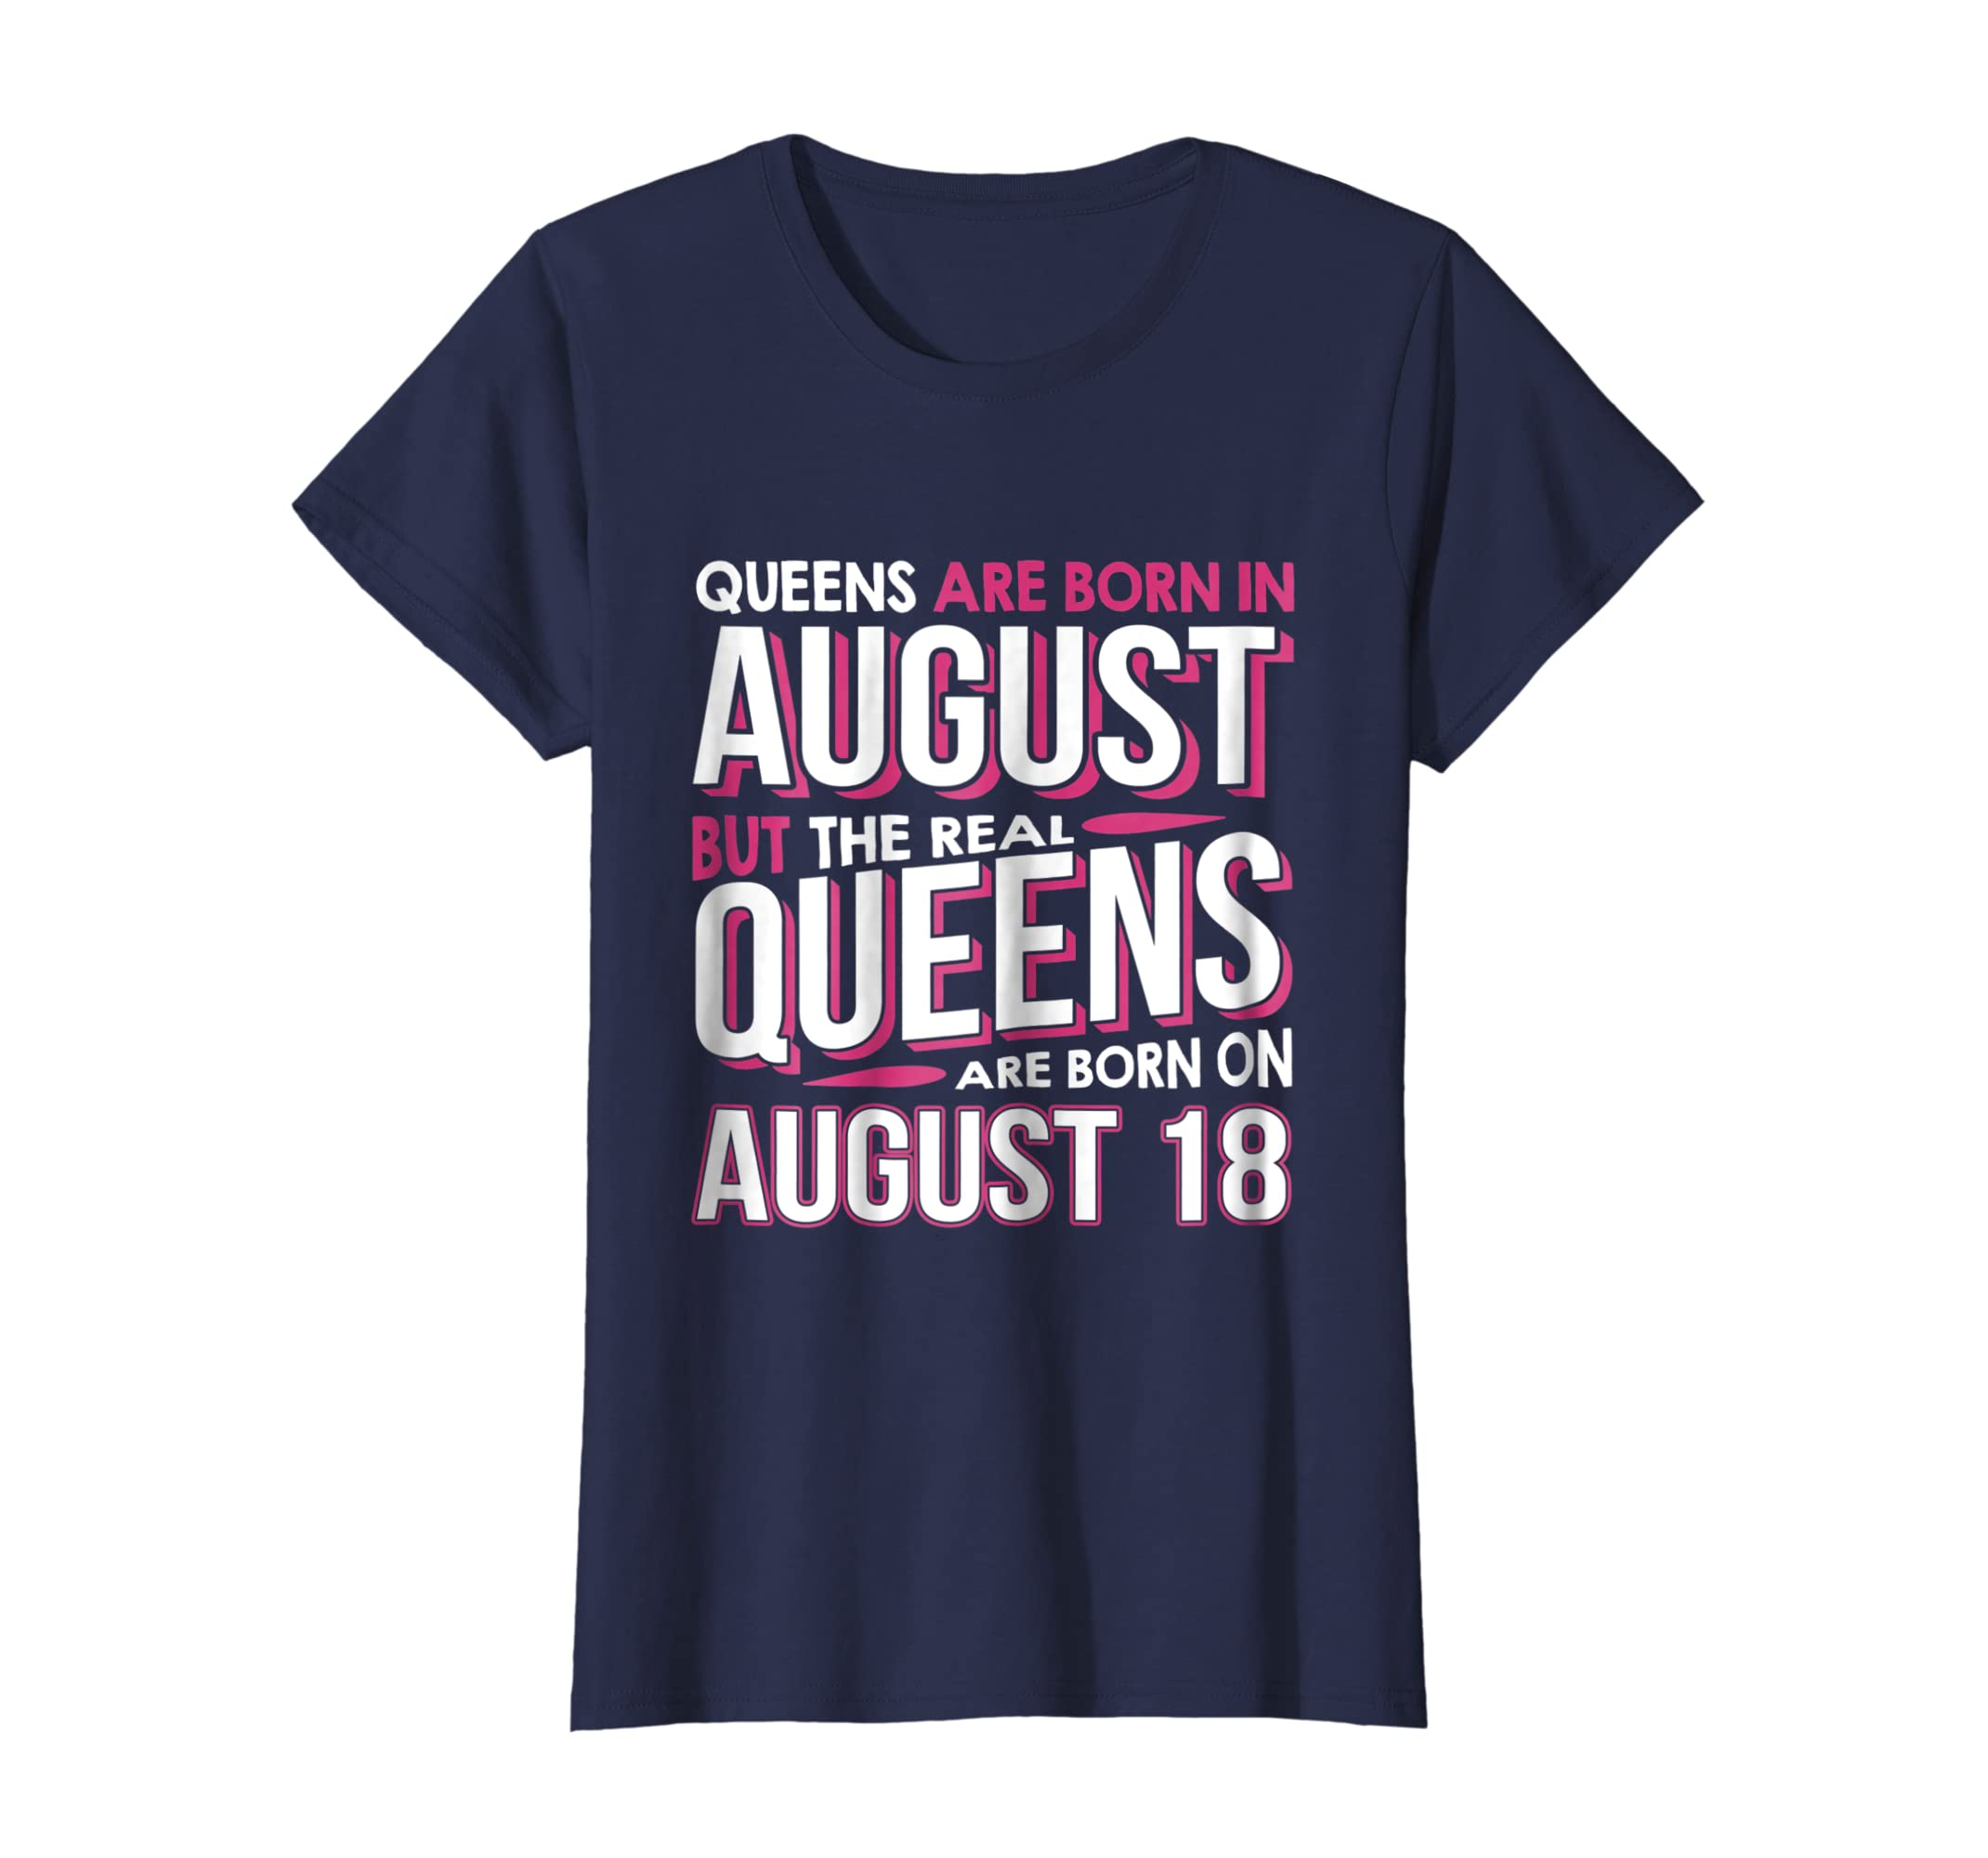 876731cf0 Amazon.com: Real Queens Are Born On August 18 T-shirt 18th Birthday Gift:  Clothing